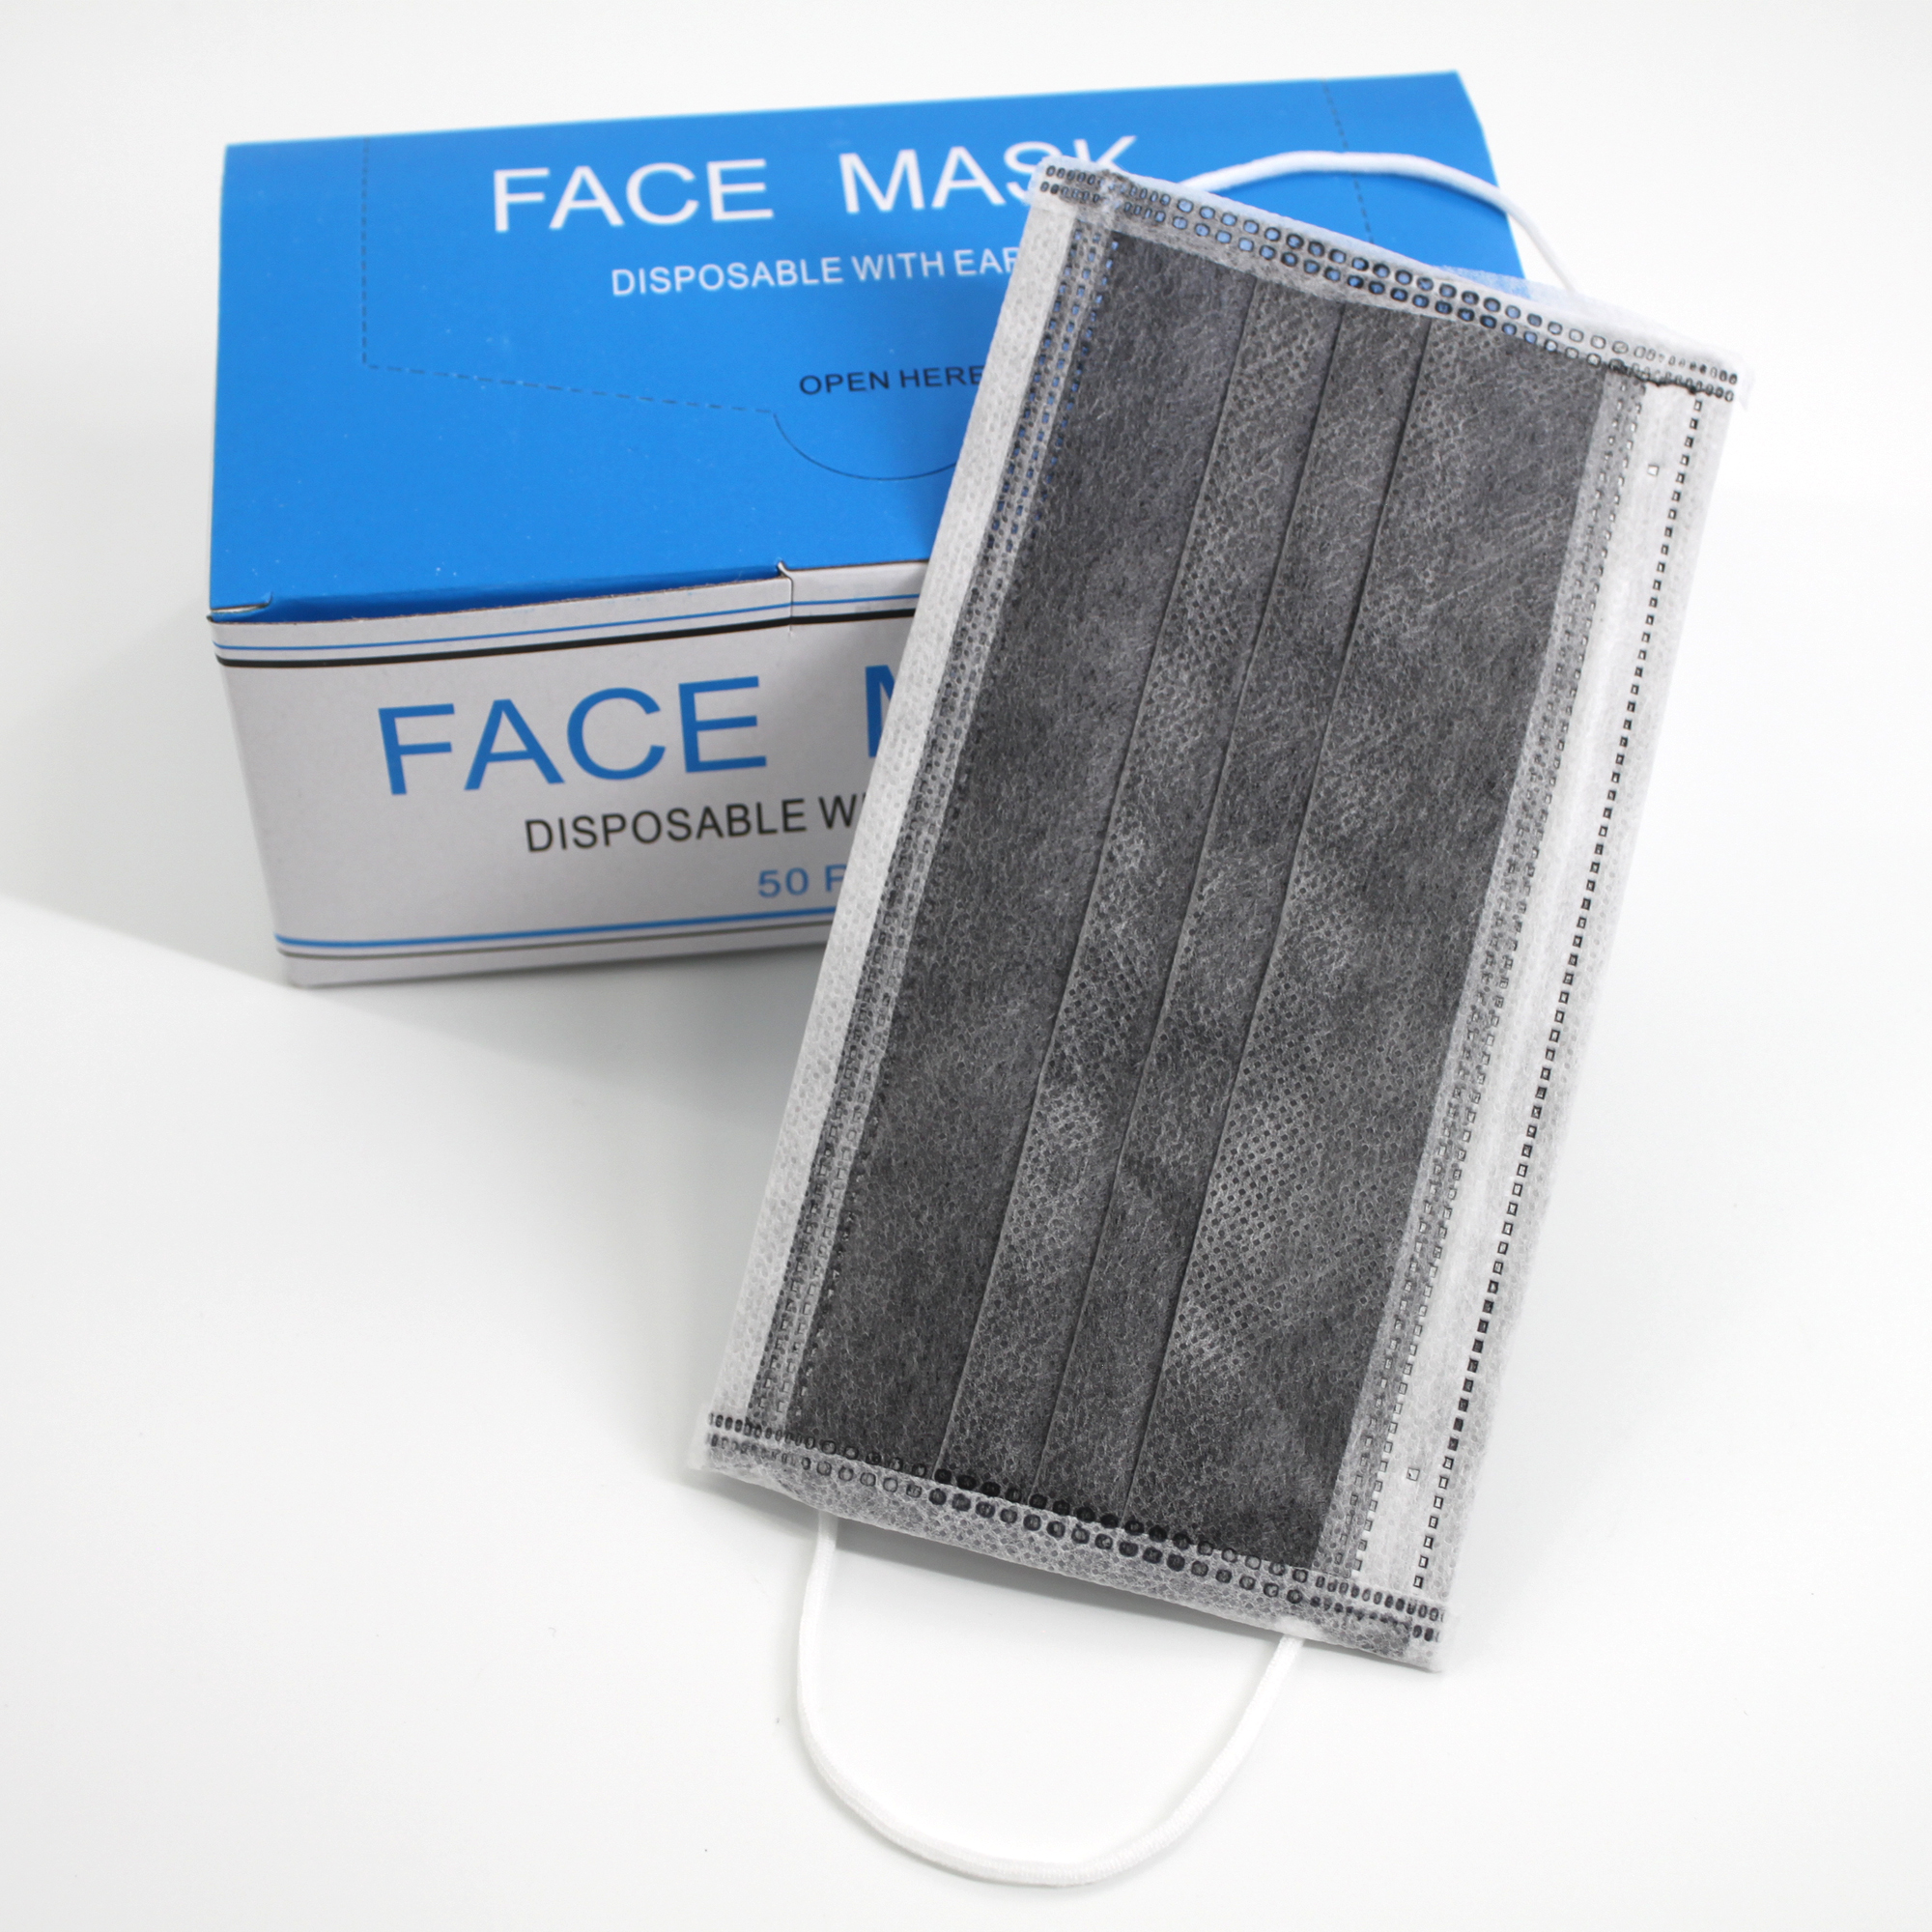 4 ply surgical face mask